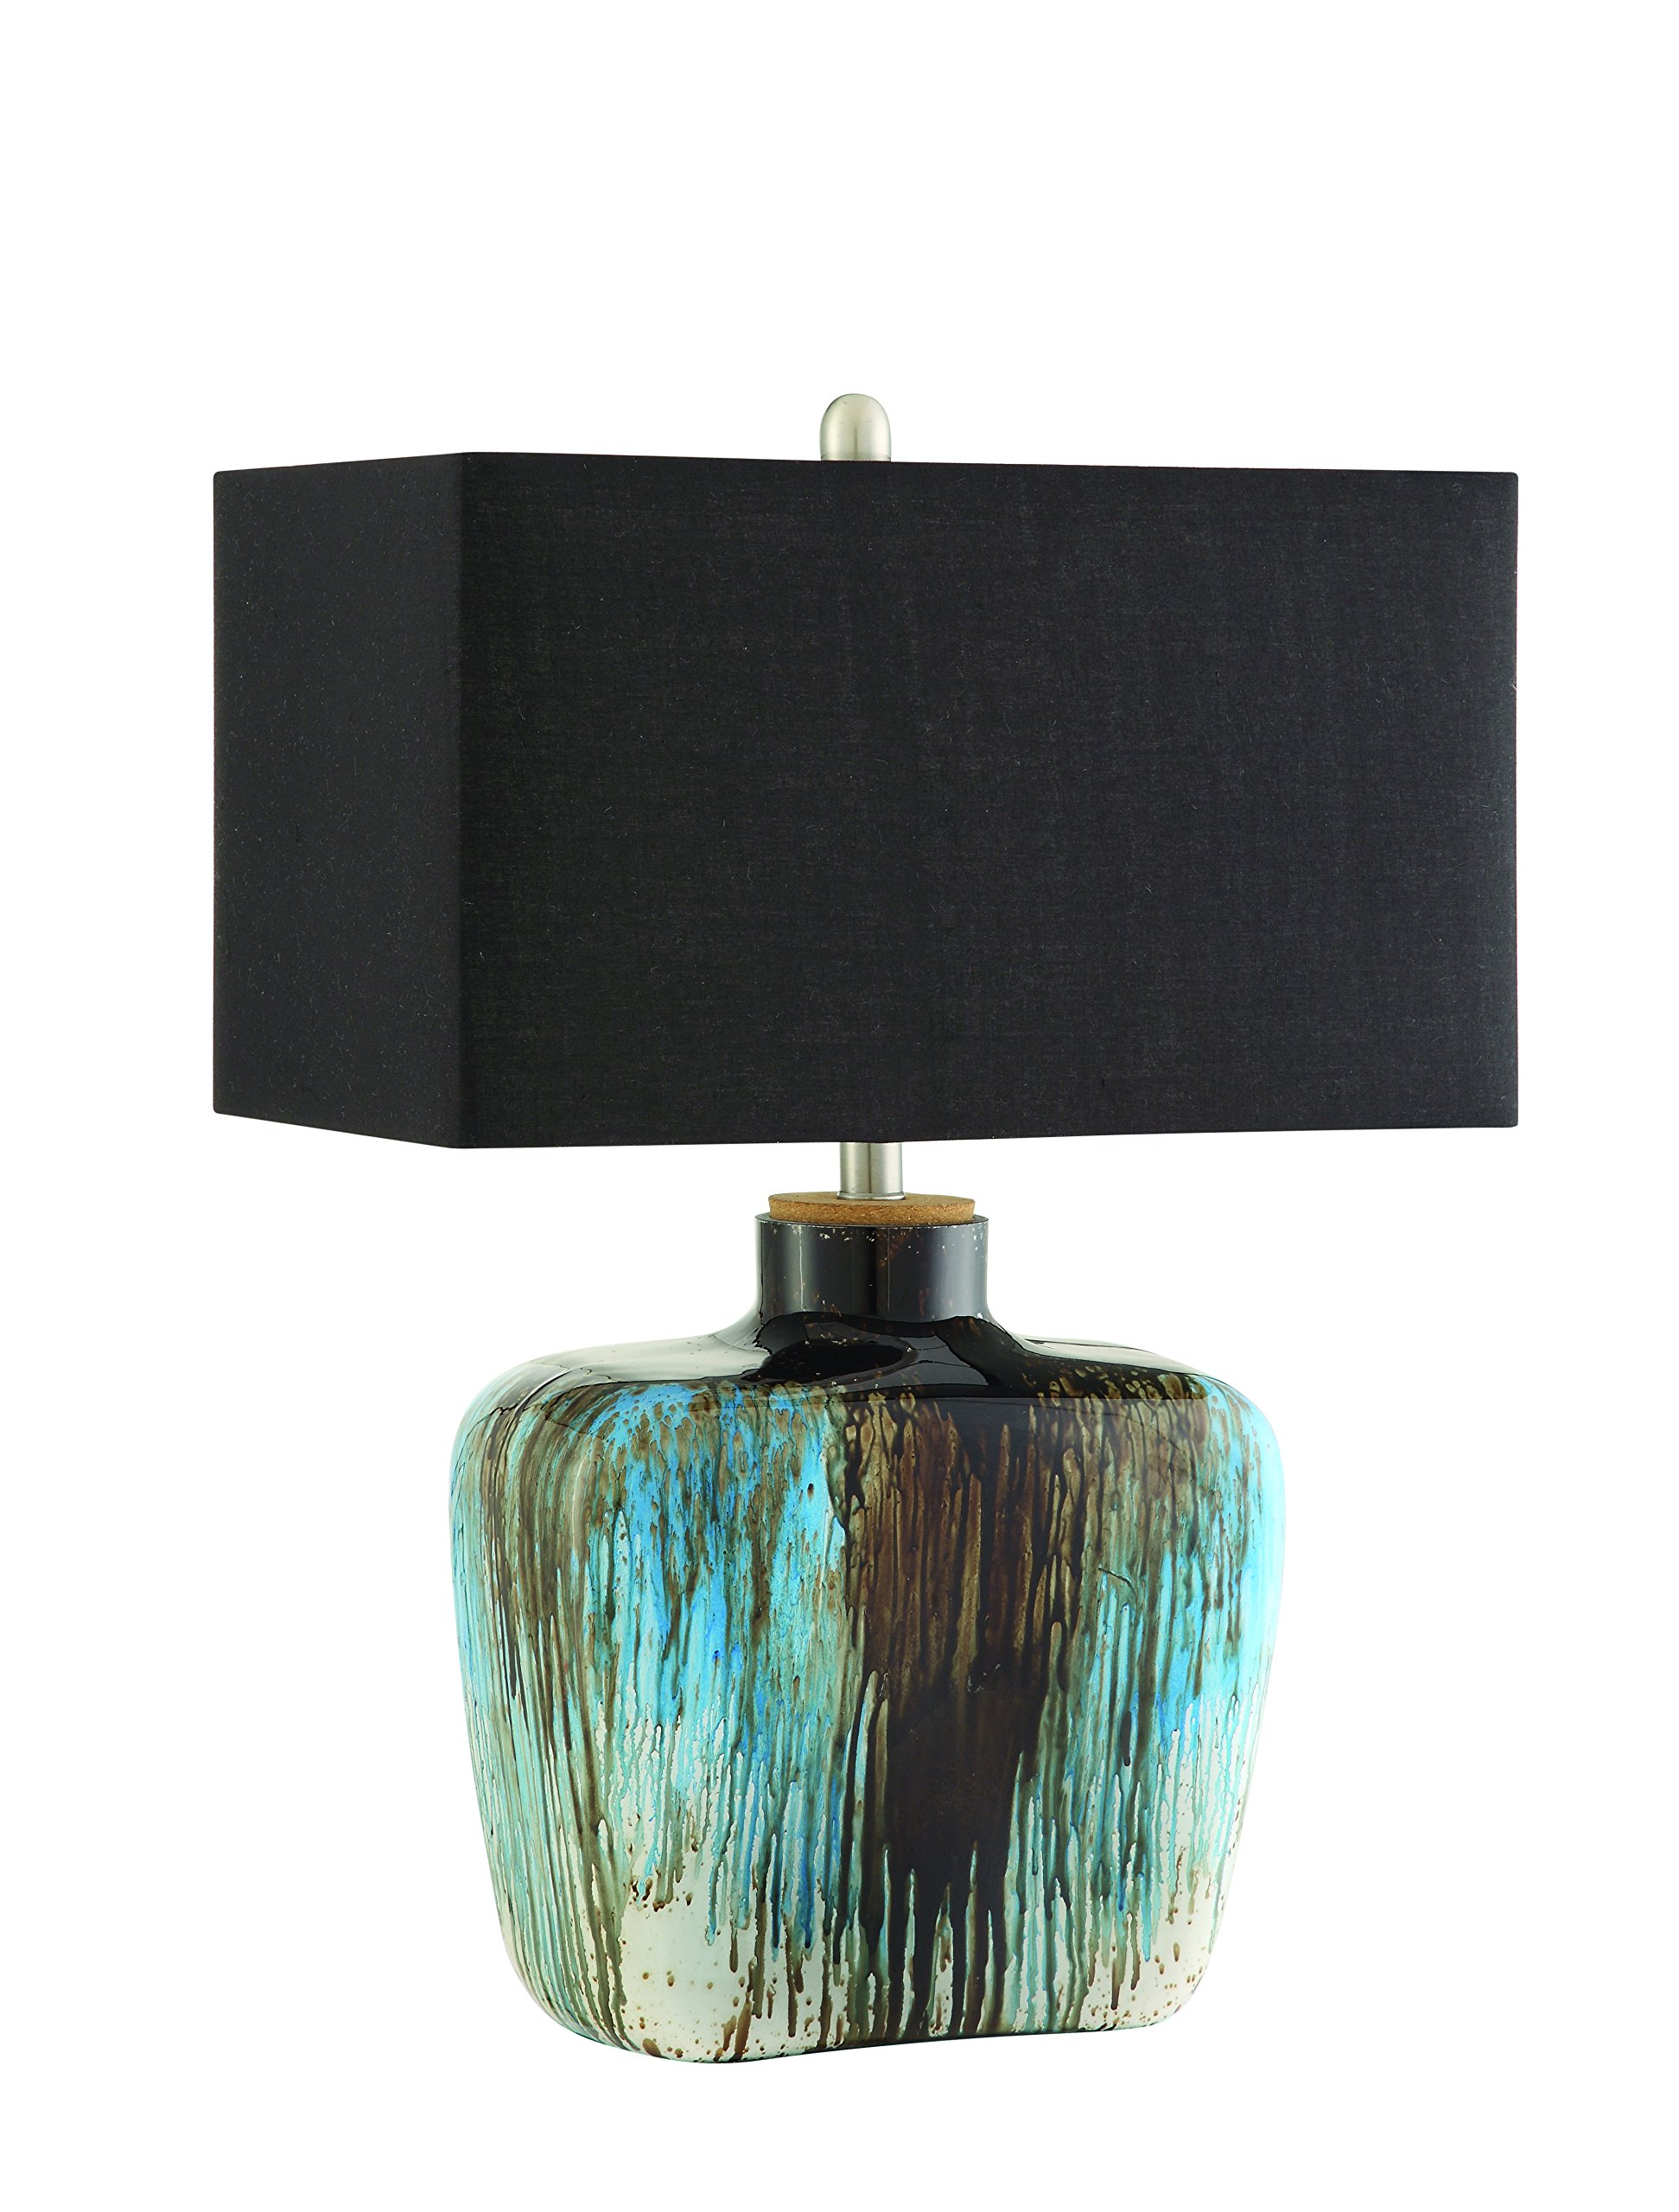 Coaster 901246 Home Furnishings Table Lamp, Antique Silver/Blue